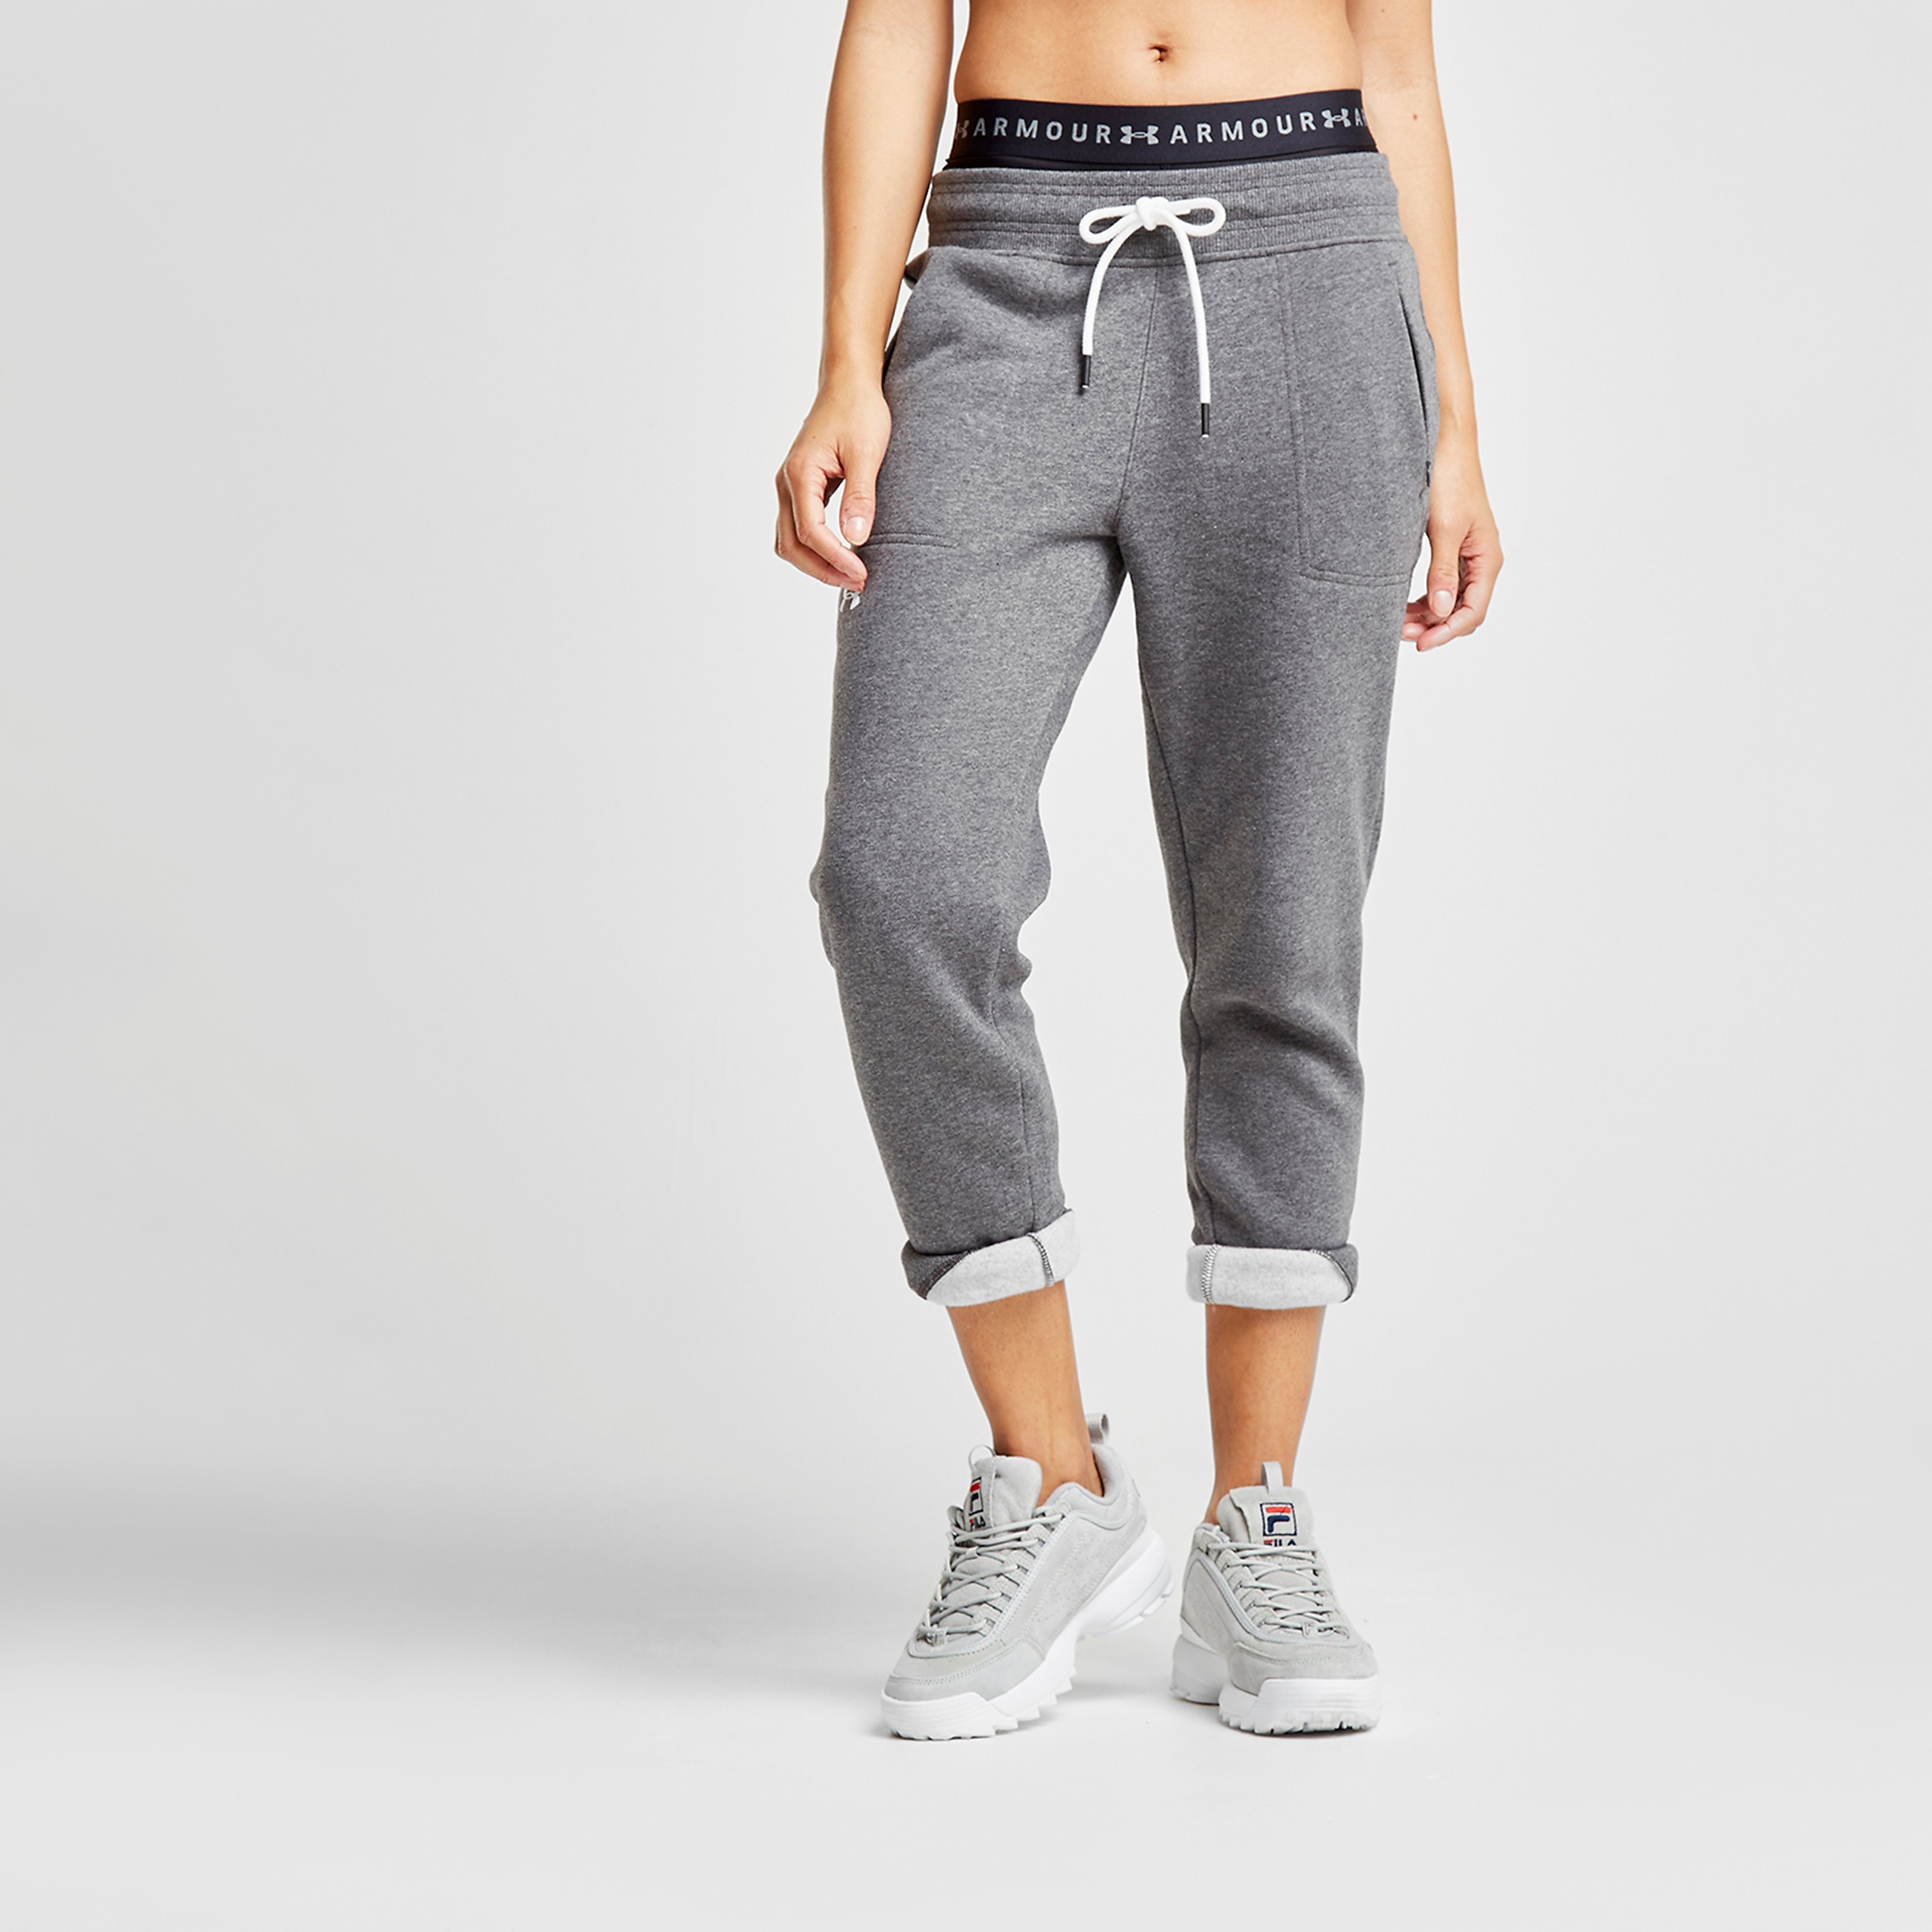 Under Armour Tapered Cuff Pants